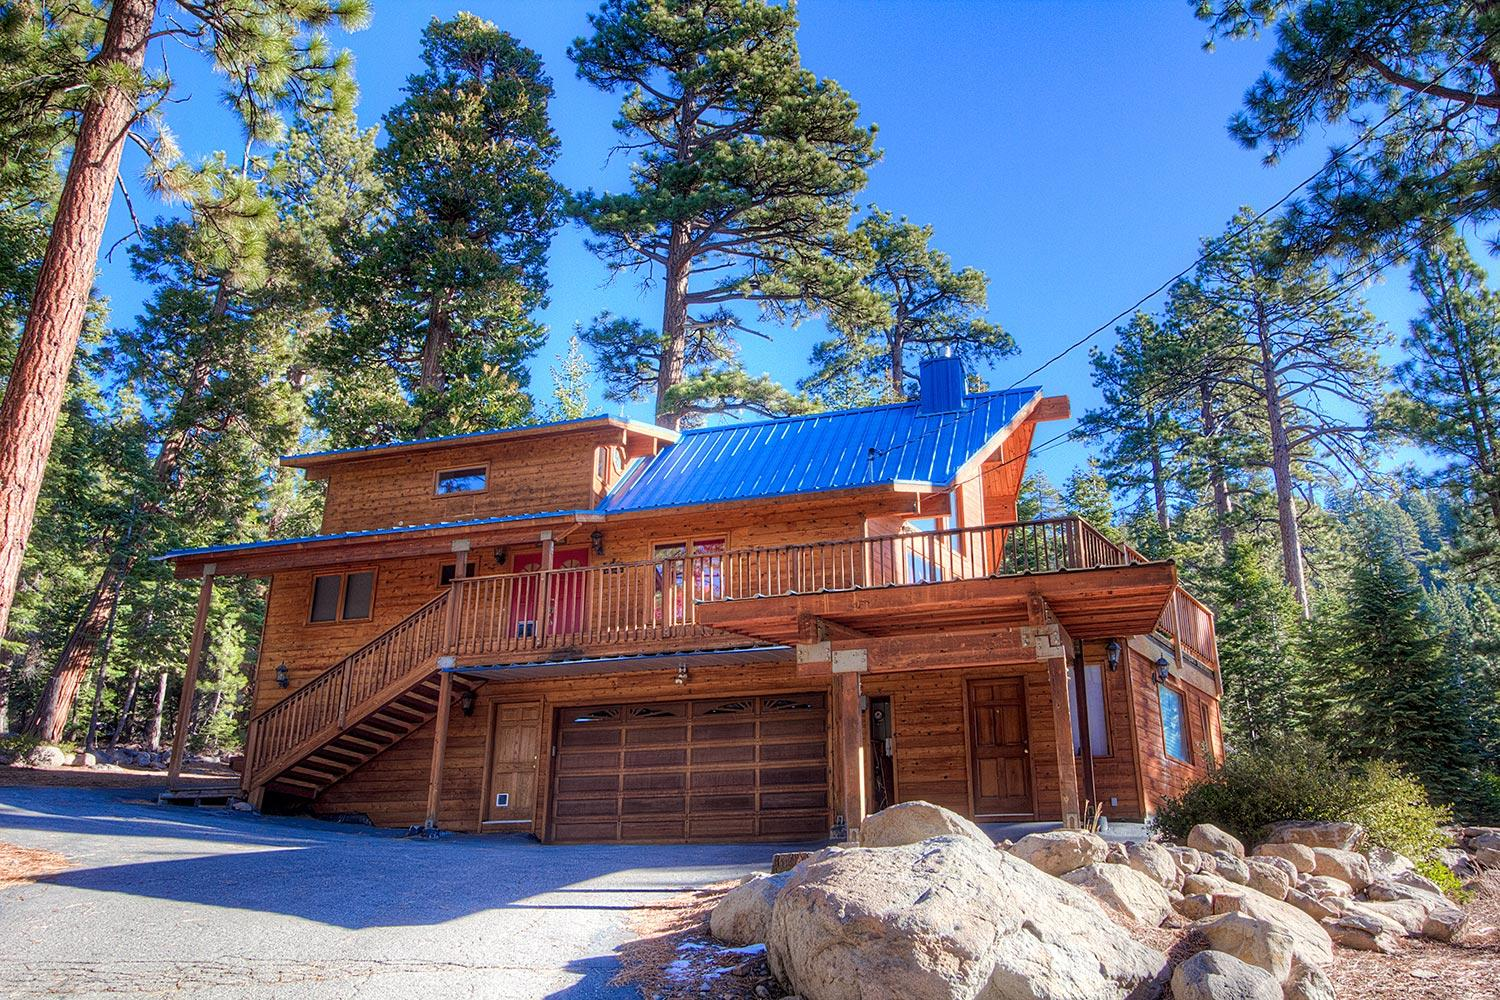 nsh0621 Lake Tahoe Vacation Rental